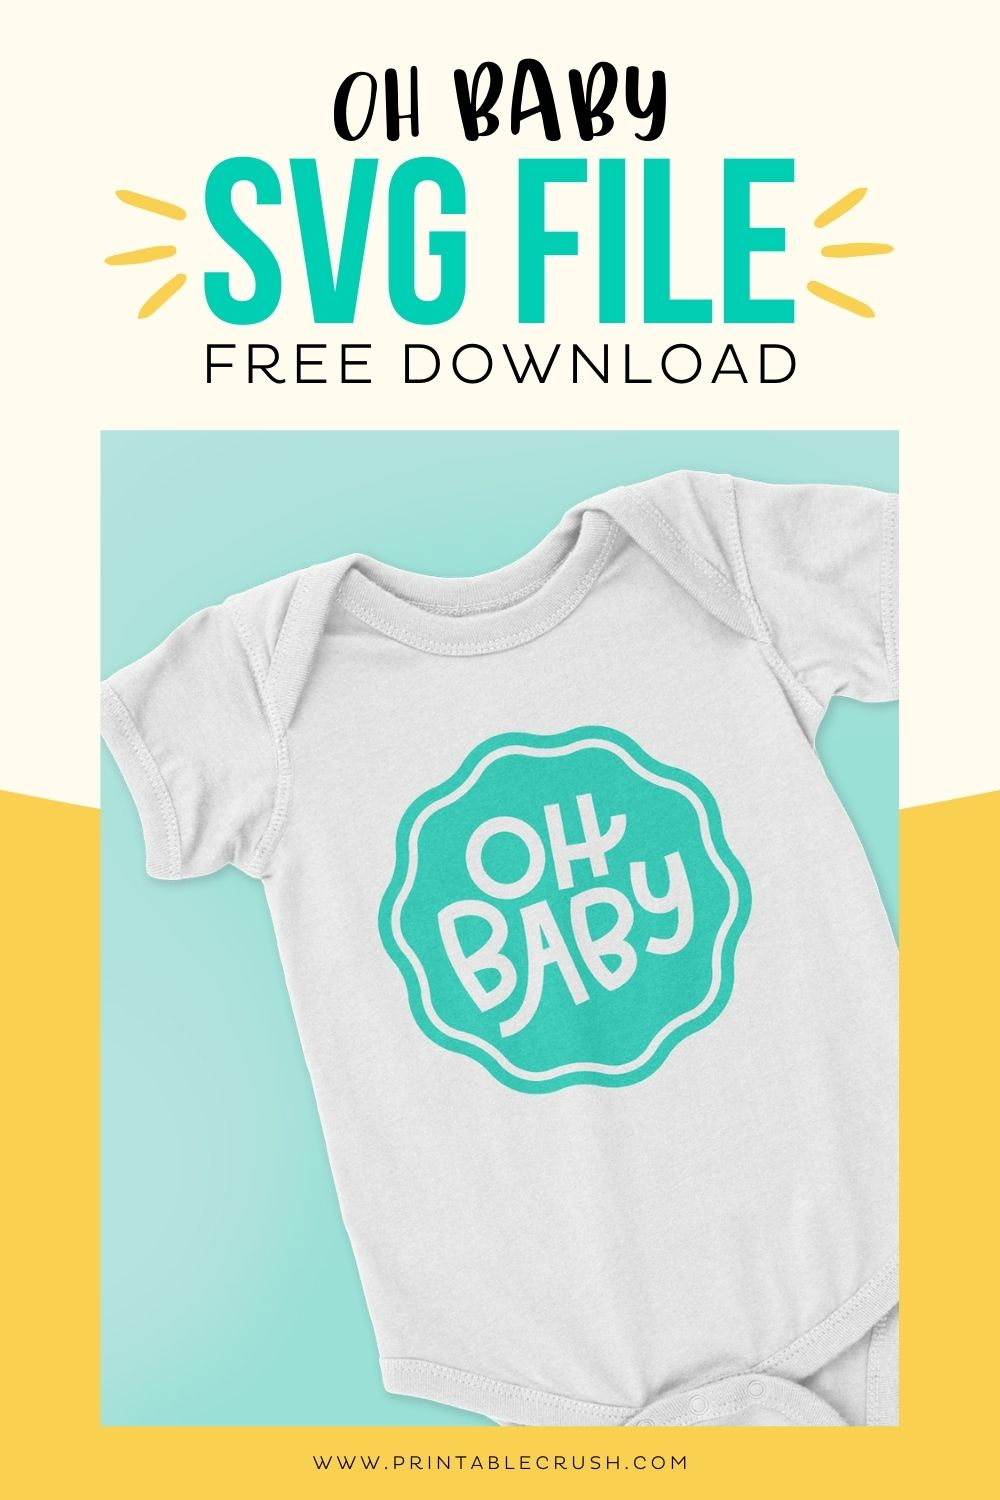 Oh Baby SVG File for Cricut Projects - Free SVG download - Printable Crush #SVGFILE #babyshowergift #babyshowergiftidea #babysvgfile via @printablecrush